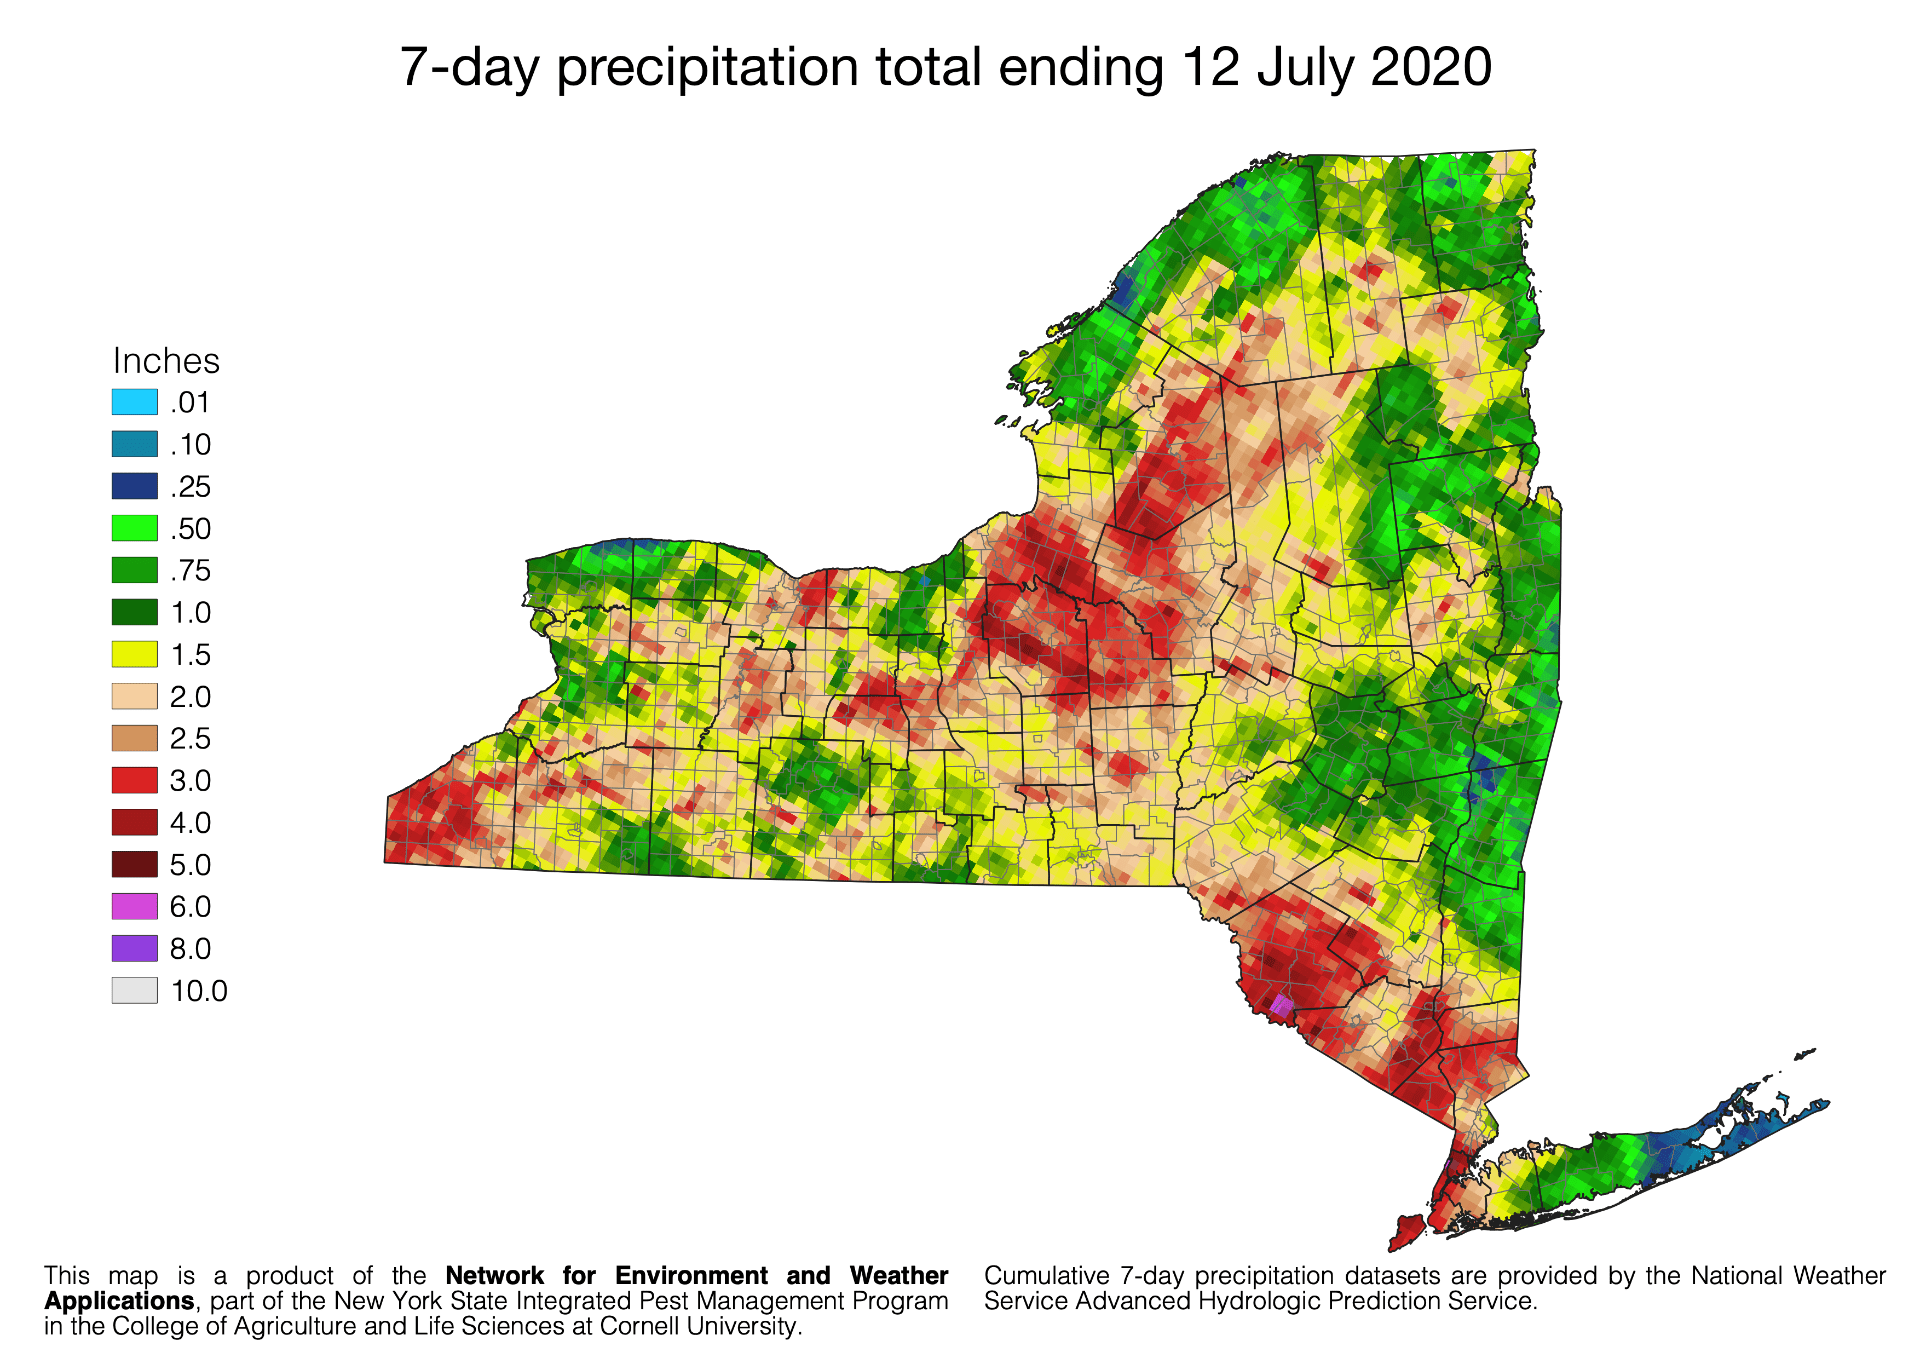 7-day rainfall totals for New York State as of 12 July 2020. Data provided by the National Weather Service Advance Hyrologic Prediction Service.